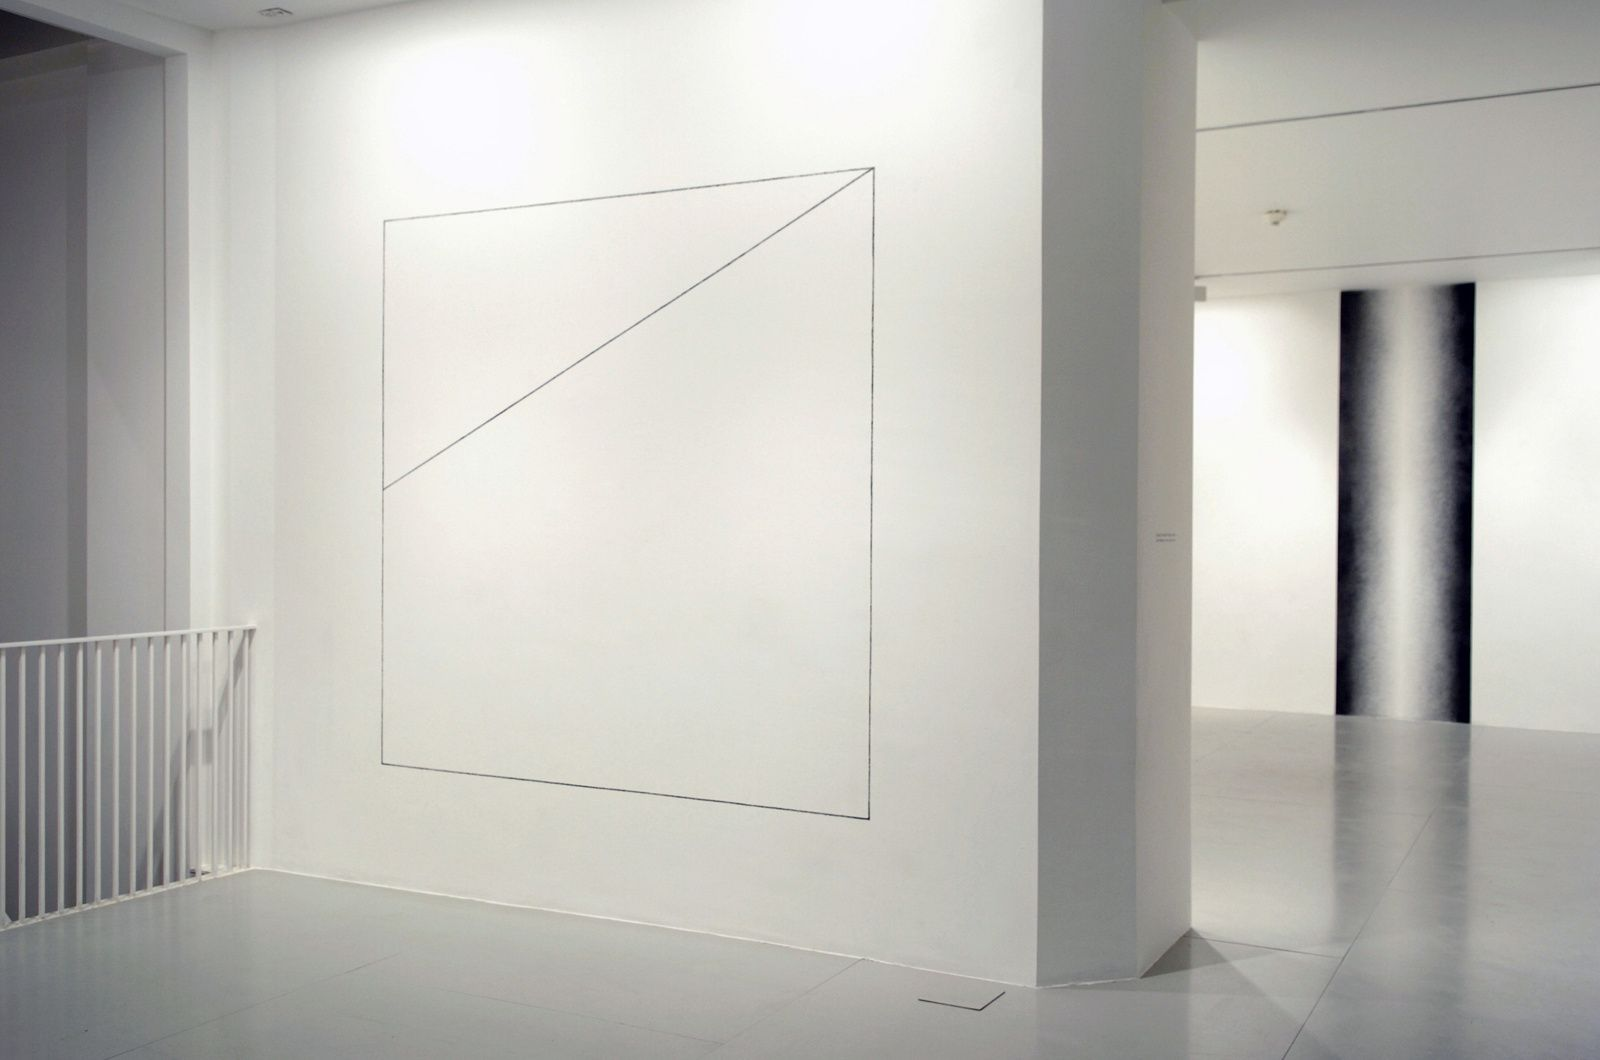 Wall Drawing No. 821 A square is divided horizontally and vertically into four equal parts, each with a different direction of alternating flat black and glossy black bands | Sol LeWitt | Artists | Lisson Gallery